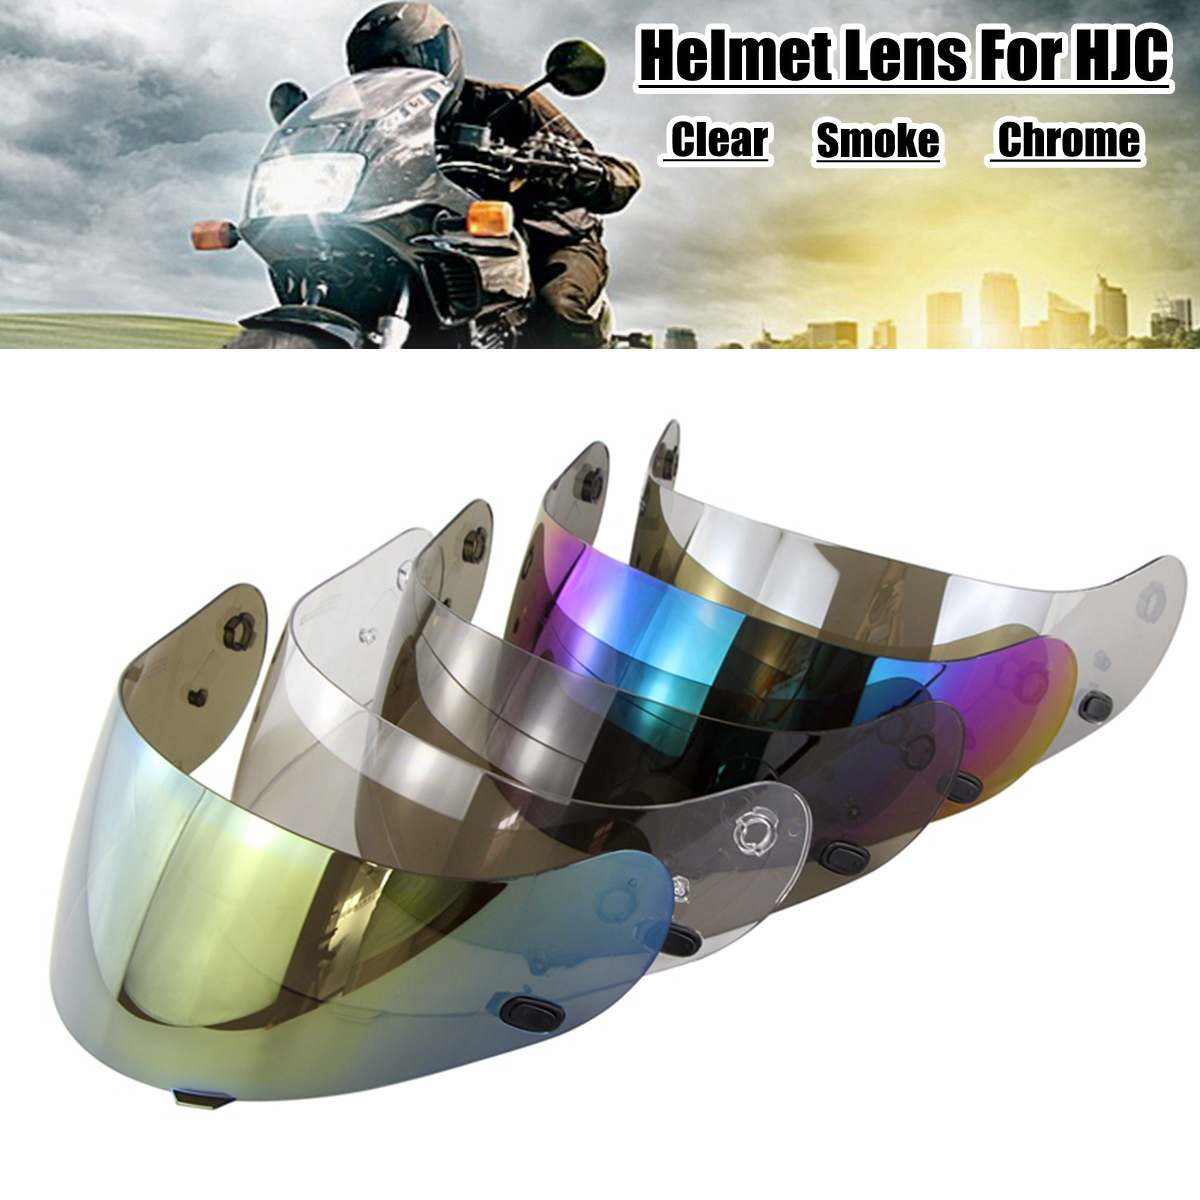 Motorcycle Helmet Lens Visor Helmet Glasses For HJC CL-16 CL-17 CS-15 CS-R1 CS-R2 CS-15 FG-15 TR-1